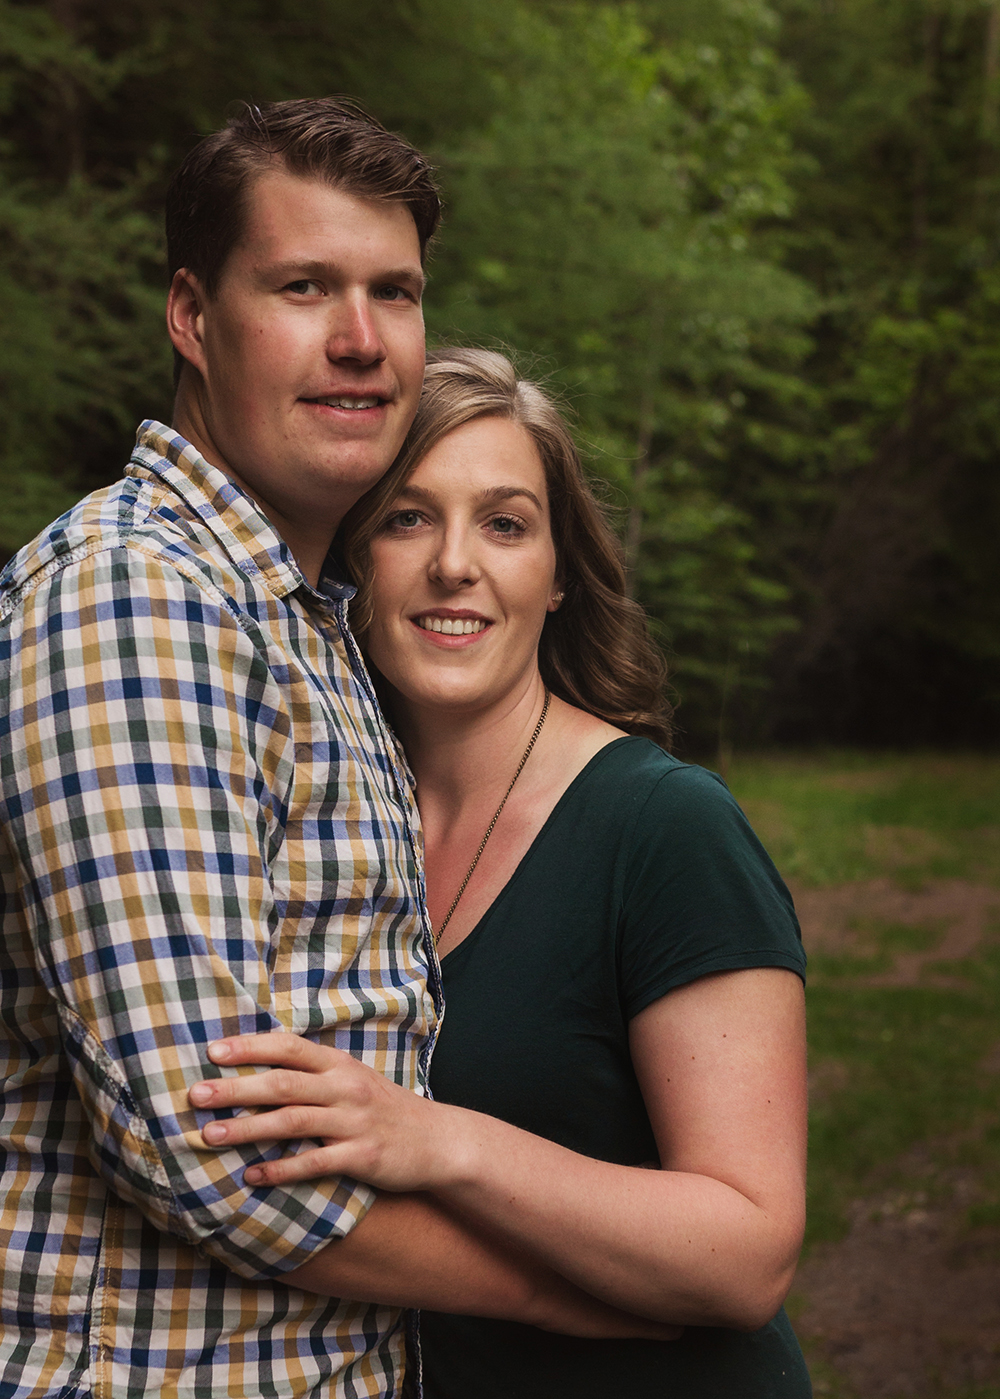 Edmonton Family Photographer_Alexa and Kory Sneak Peek 4.jpg